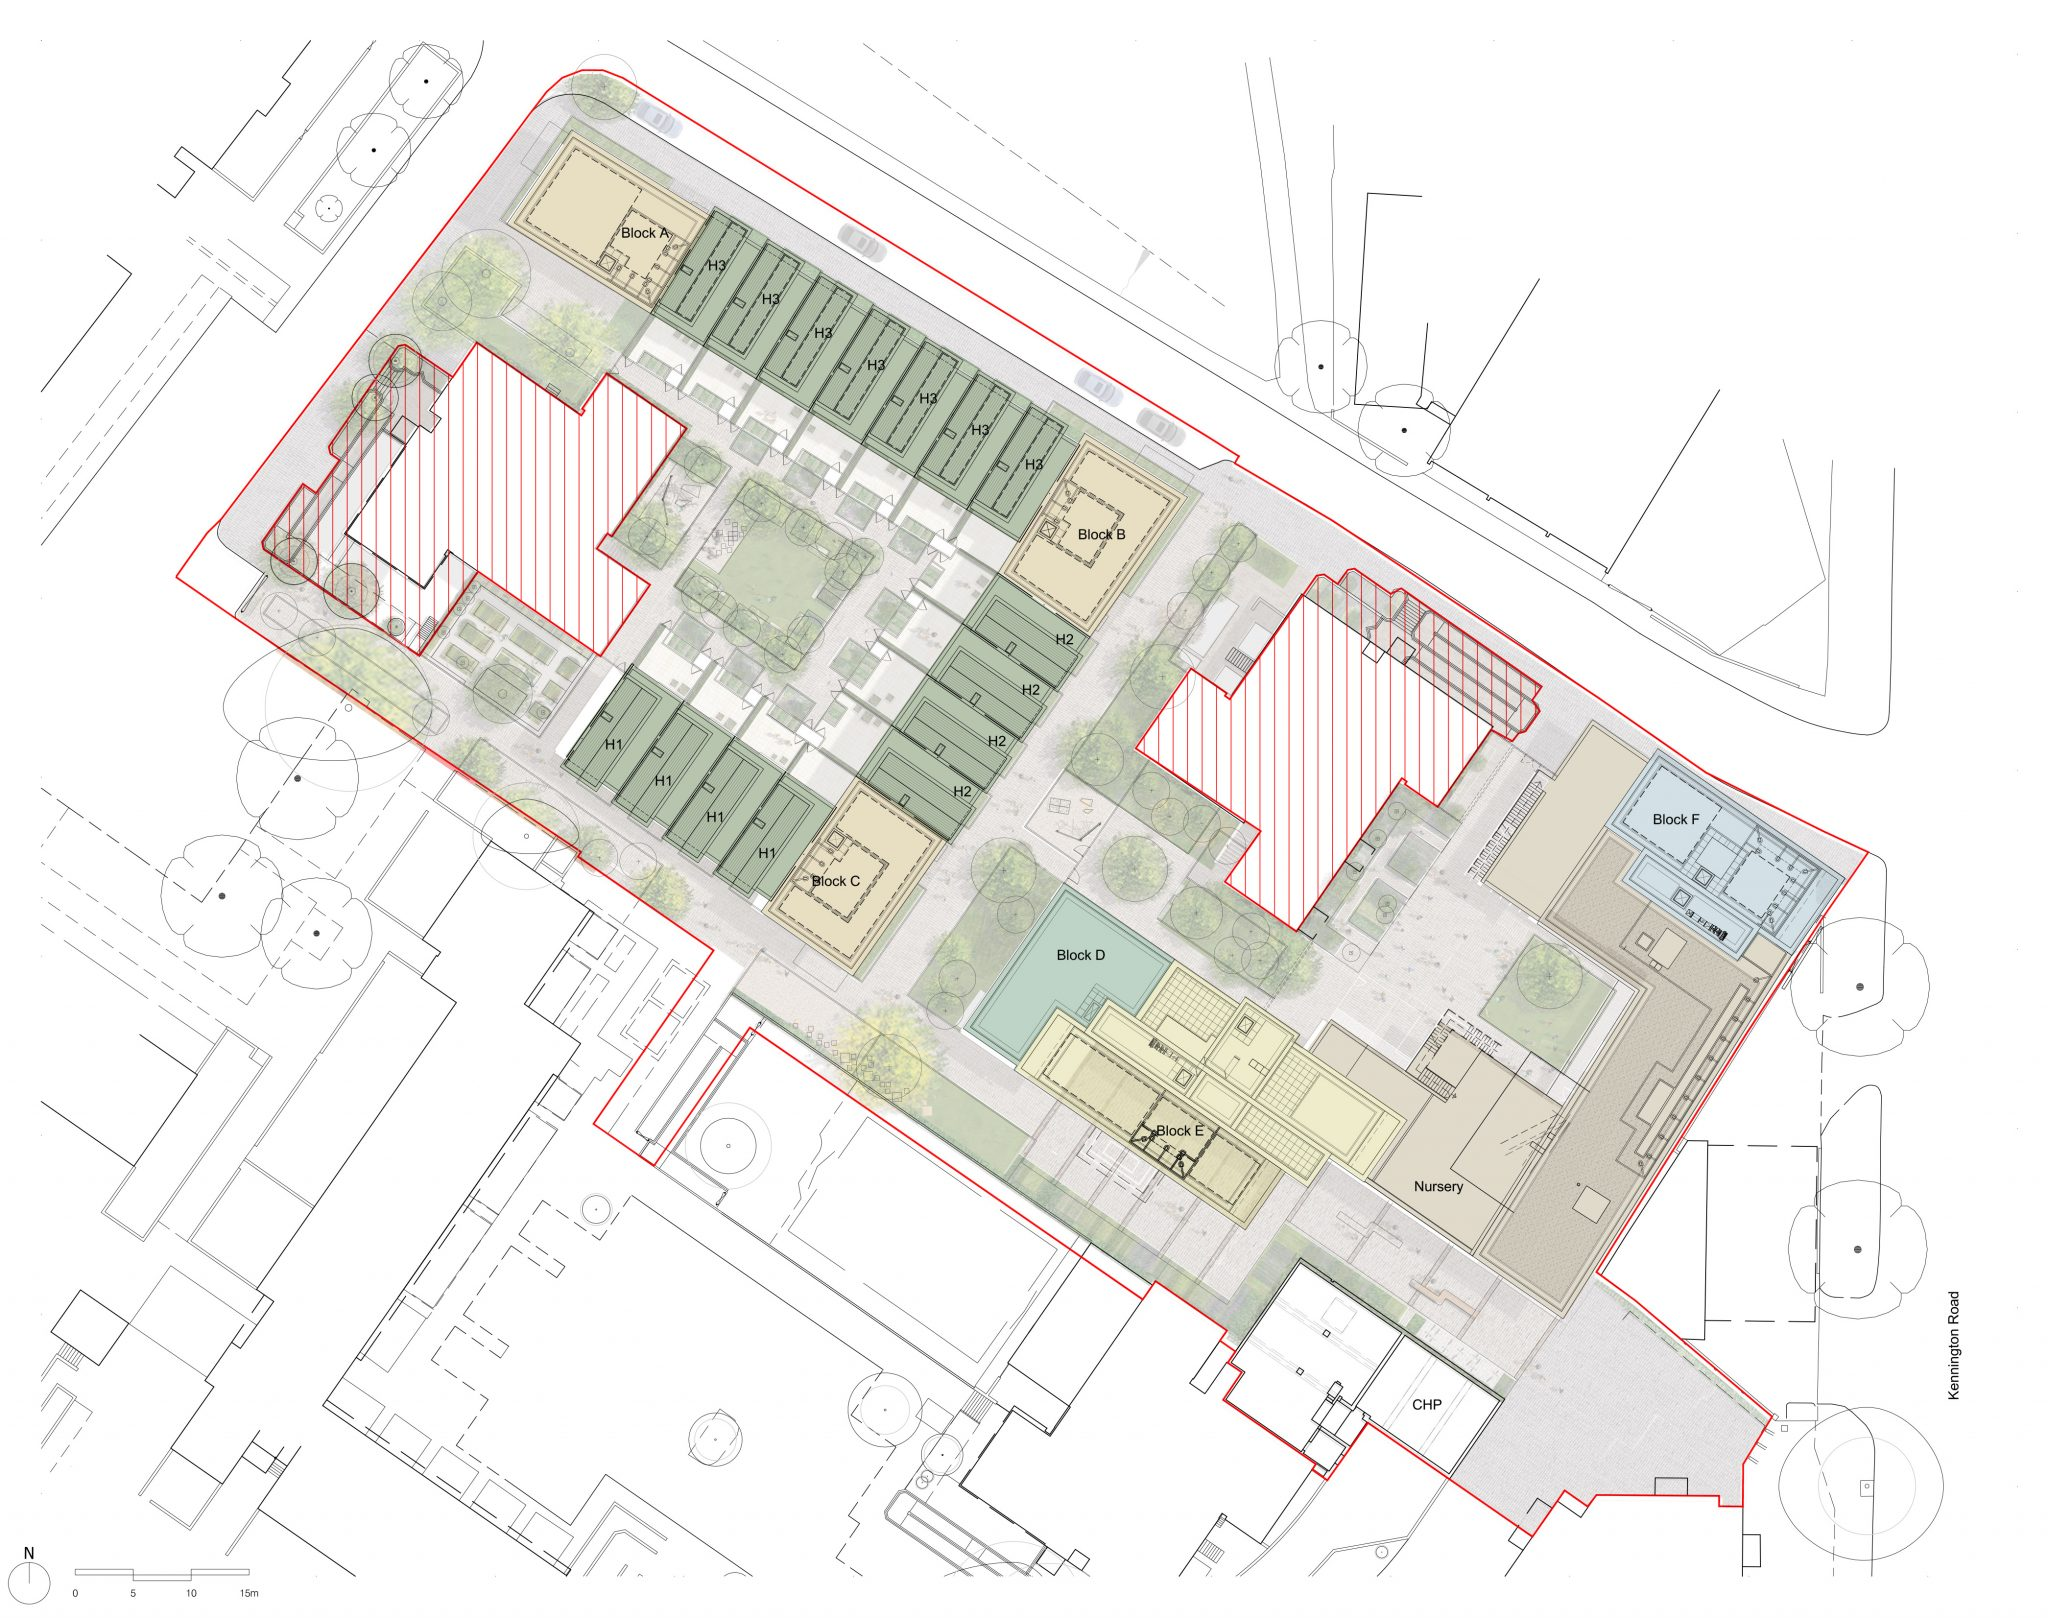 Lollard Street: Site Plan - After